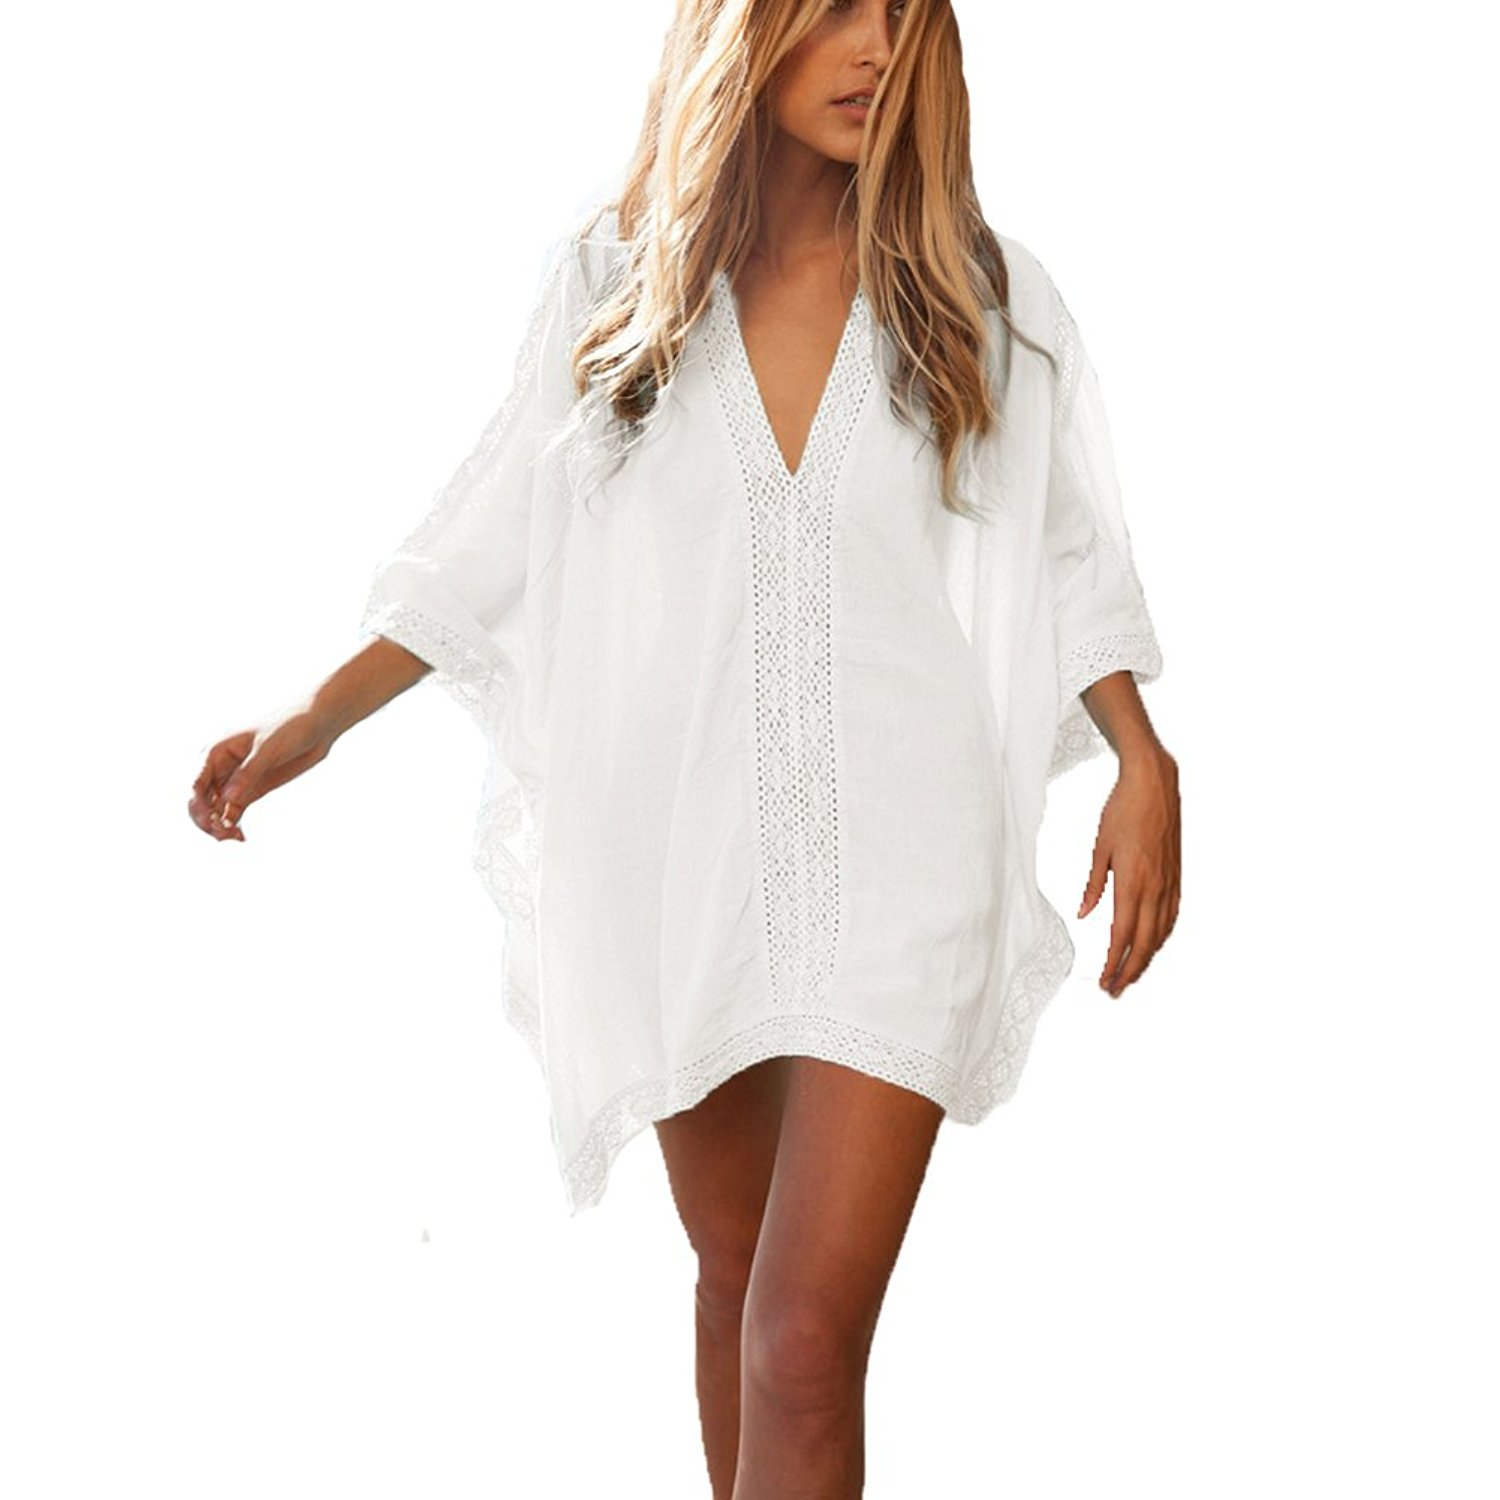 7dbc23ebd4 Get Quotations · Womens Floral Lace Bikini Swimwear Cover up Dress - Sexy  Deep V Neck Beach Swimsuit Coverups